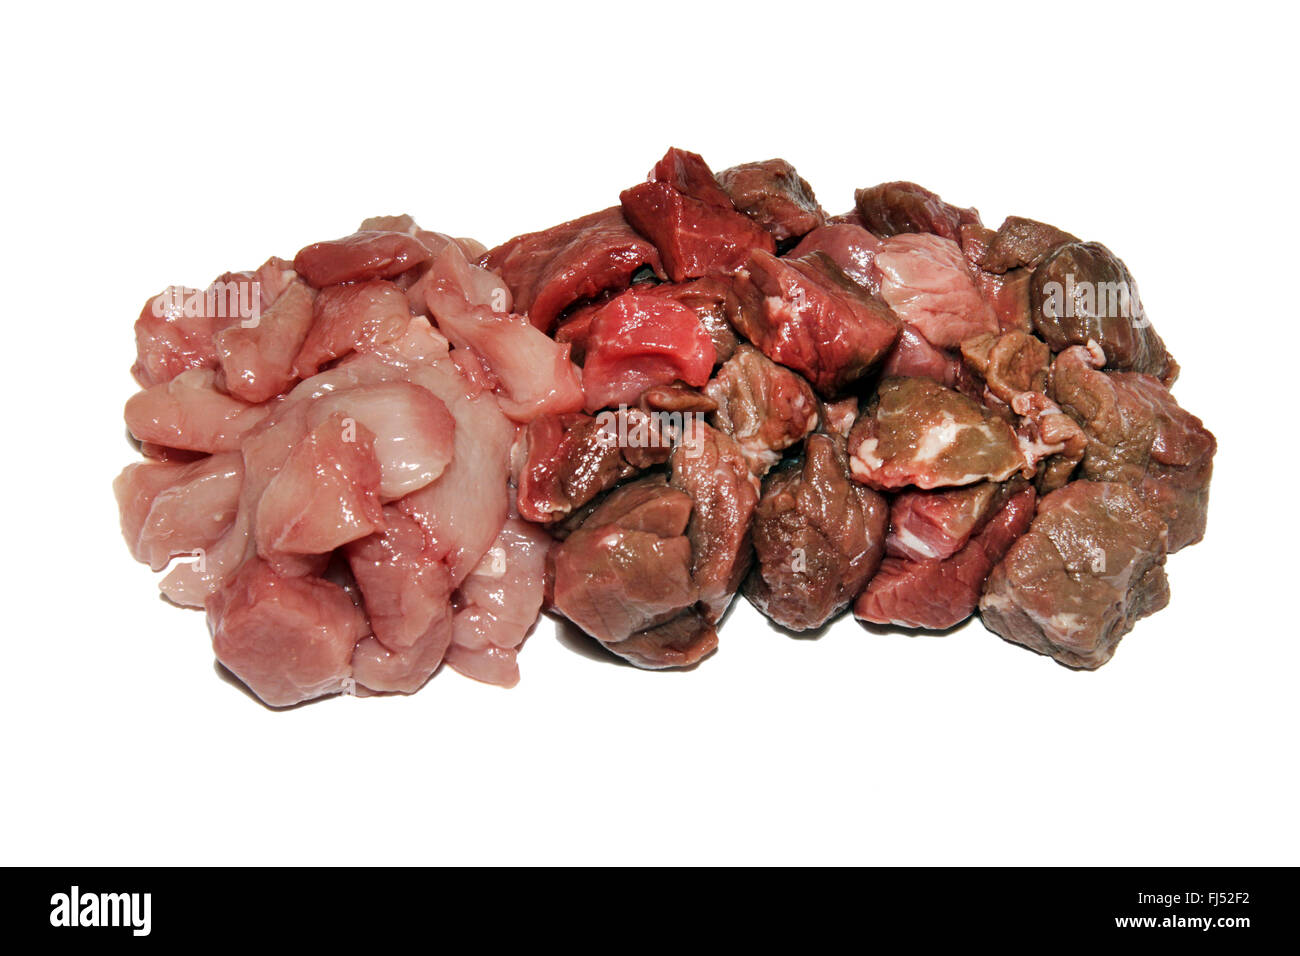 raw poultry meat, pork and beef - Stock Image